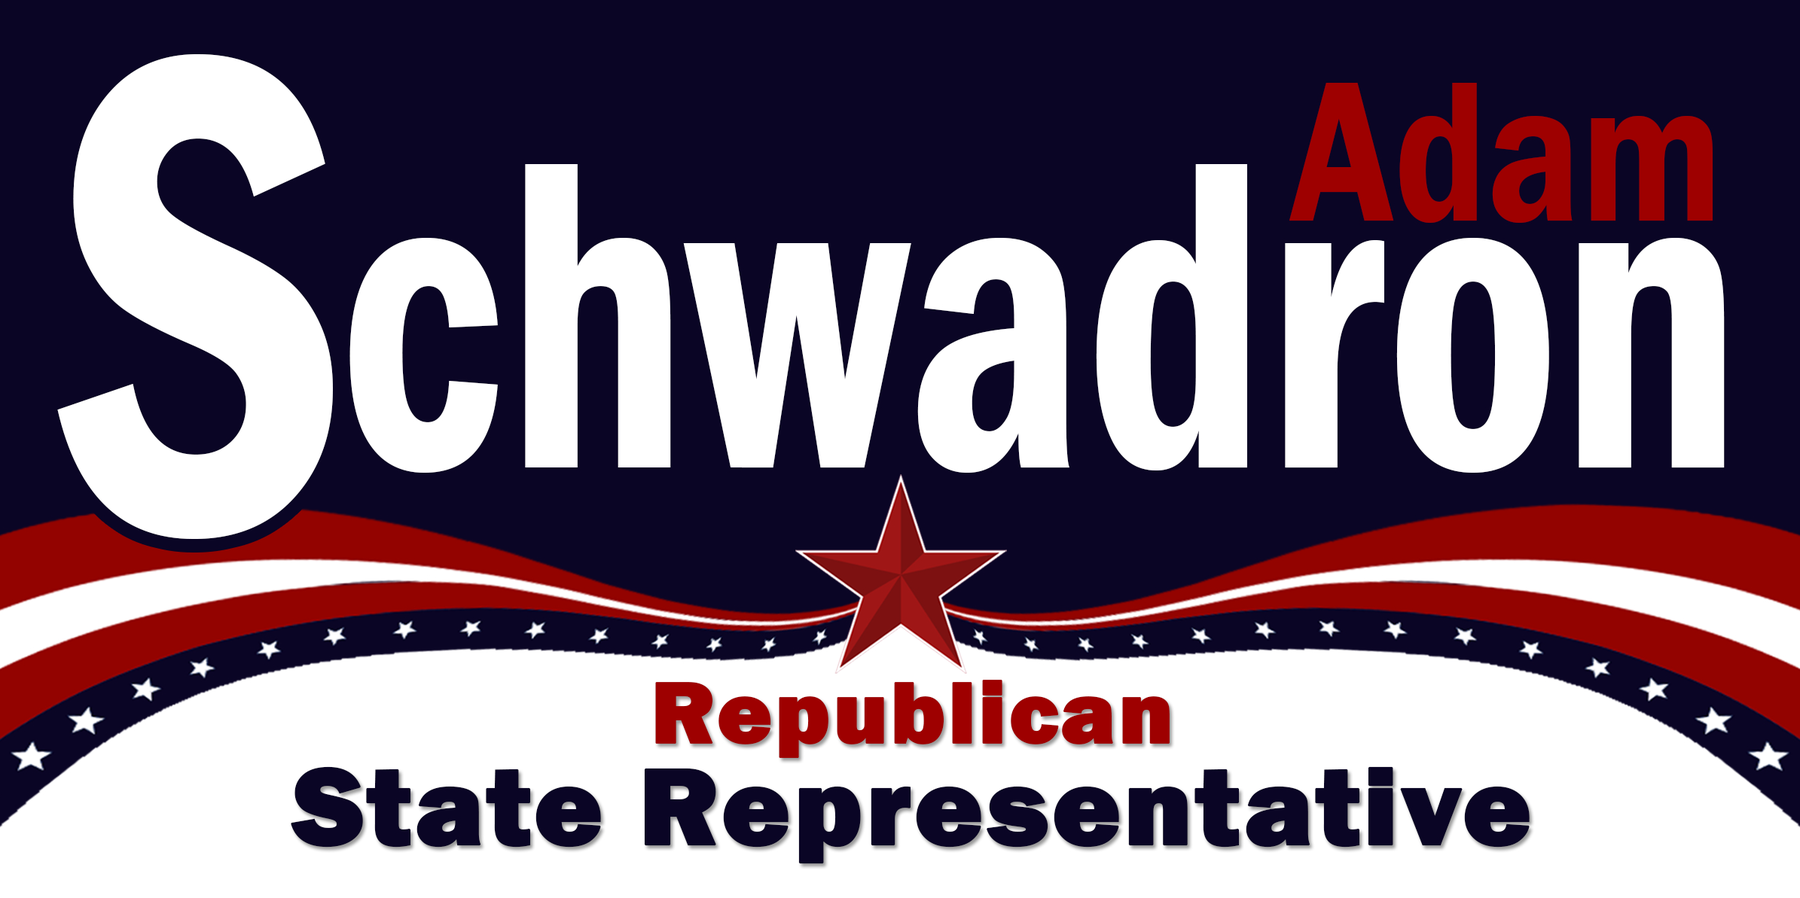 Citizens for Schwadron: Campaign Contribution